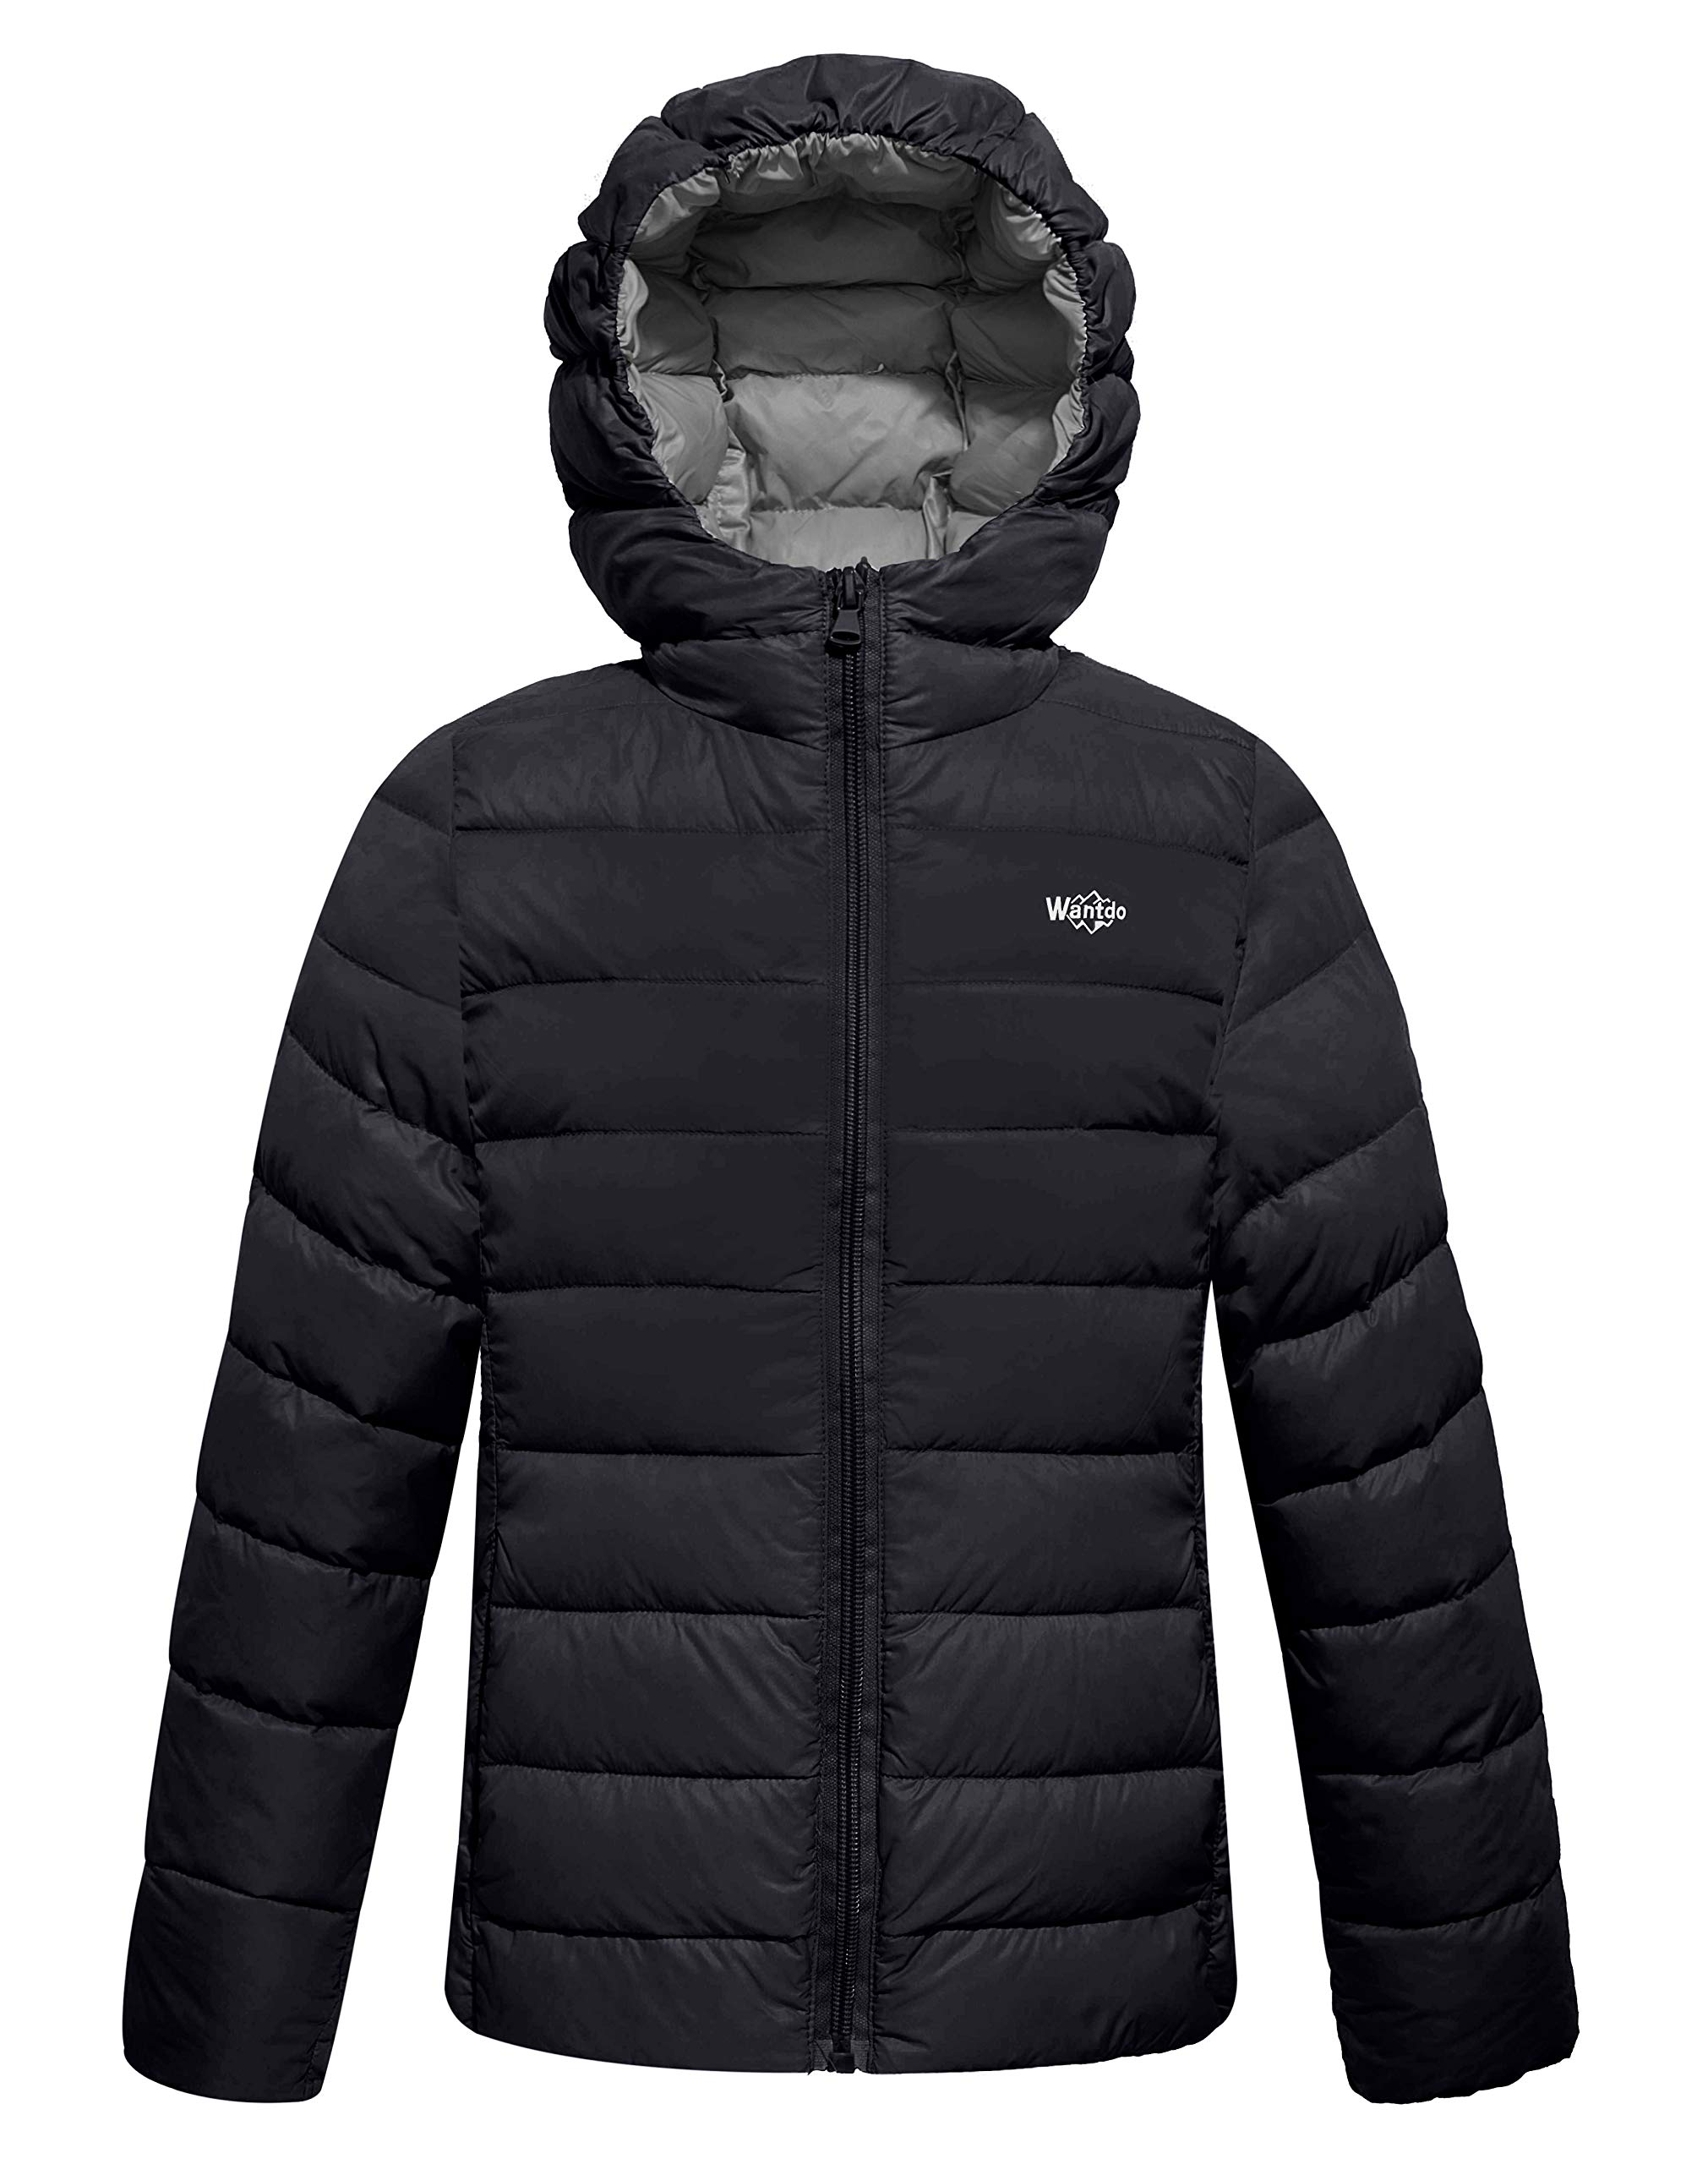 Wantdo Boy's Lightweight Puffer Down Jacket with Hood Packable Outdoors Wind Breaker(Black, 10/12) by Wantdo (Image #1)